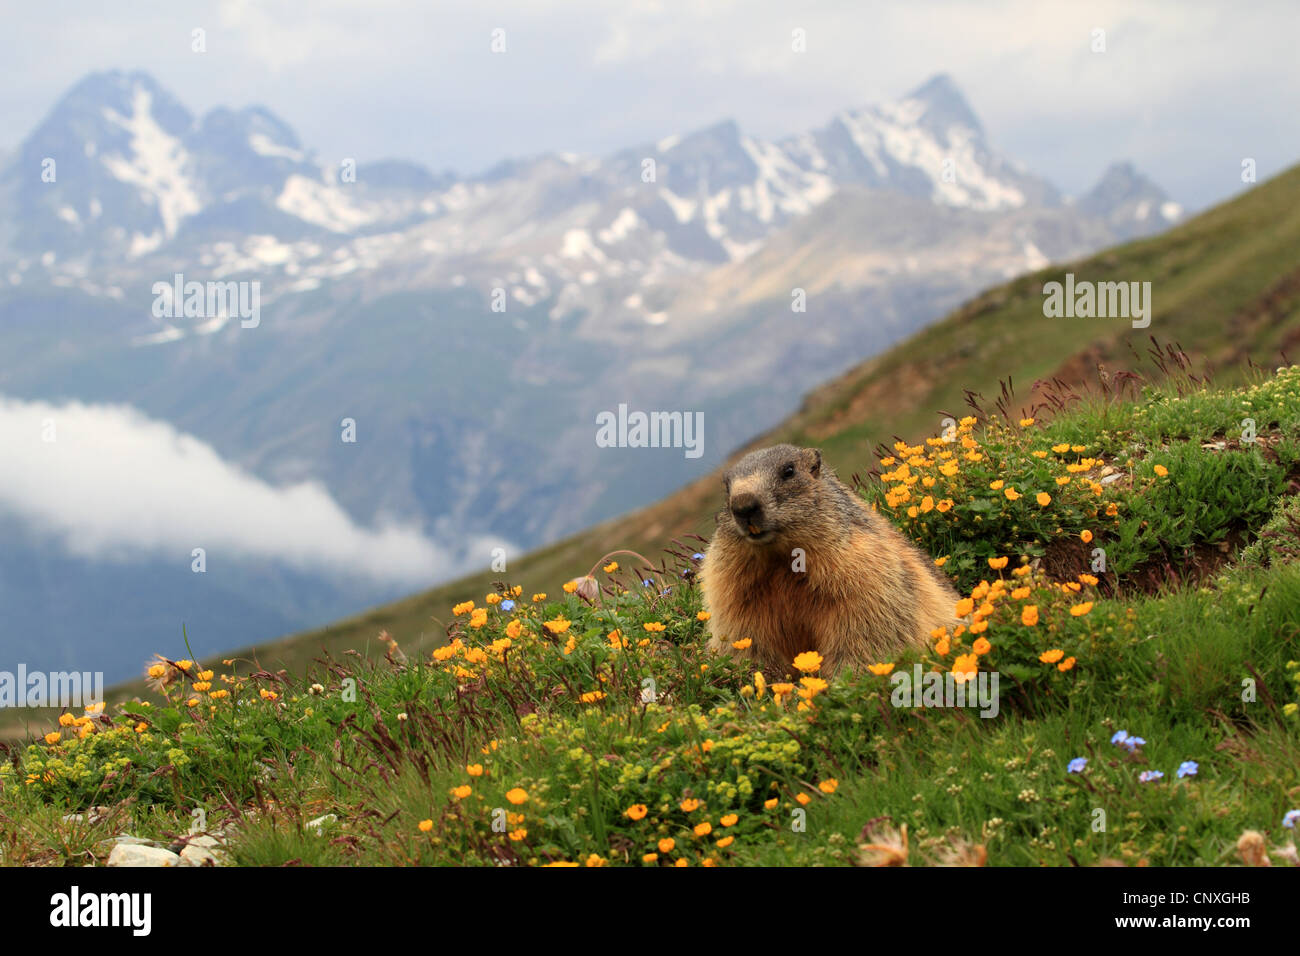 alpine marmot (Marmota marmota), in blooming mountain meadow, Switzerland, Engadine, Alp Languard Stock Photo